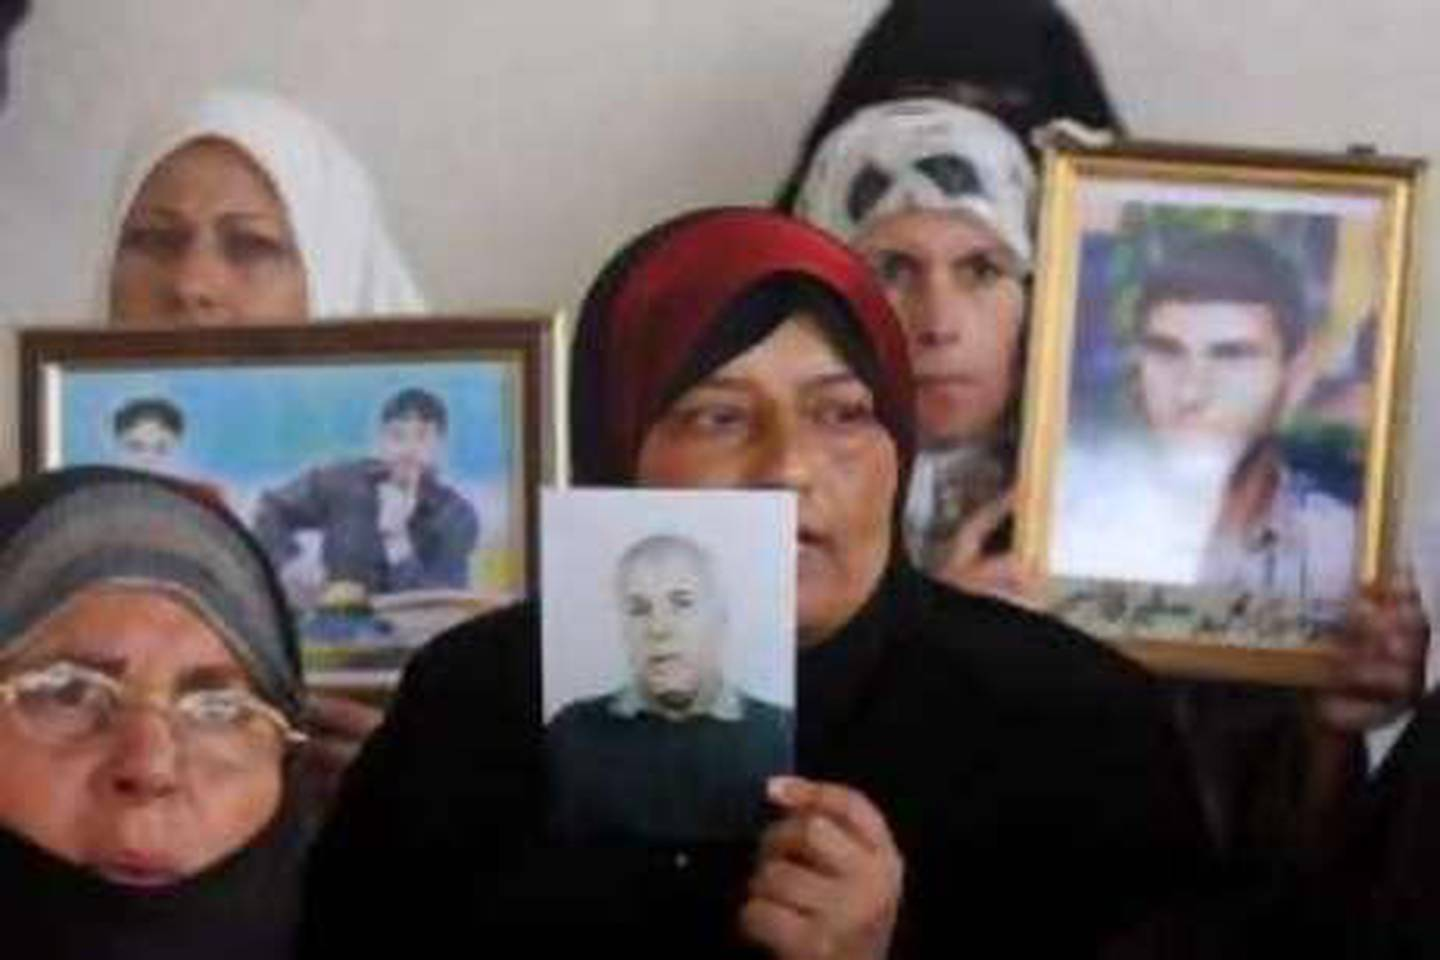 Palestinian women hold pictures of prisoners currently held in an Israeli jail during a protest calling for their release, outside the International Red Cross building in Gaza City, Monday, Aug. 18, 2008. Israel's Cabinet on Sunday approved the release of some 200 Palestinian prisoners as a goodwill gesture to the Palestinian government of moderate President Mahmoud Abbas. (AP Photo/Hatem Moussa)  *** Local Caption ***  JRL103_MIDEAST_ISRAEL_PALESTINIANS.jpg